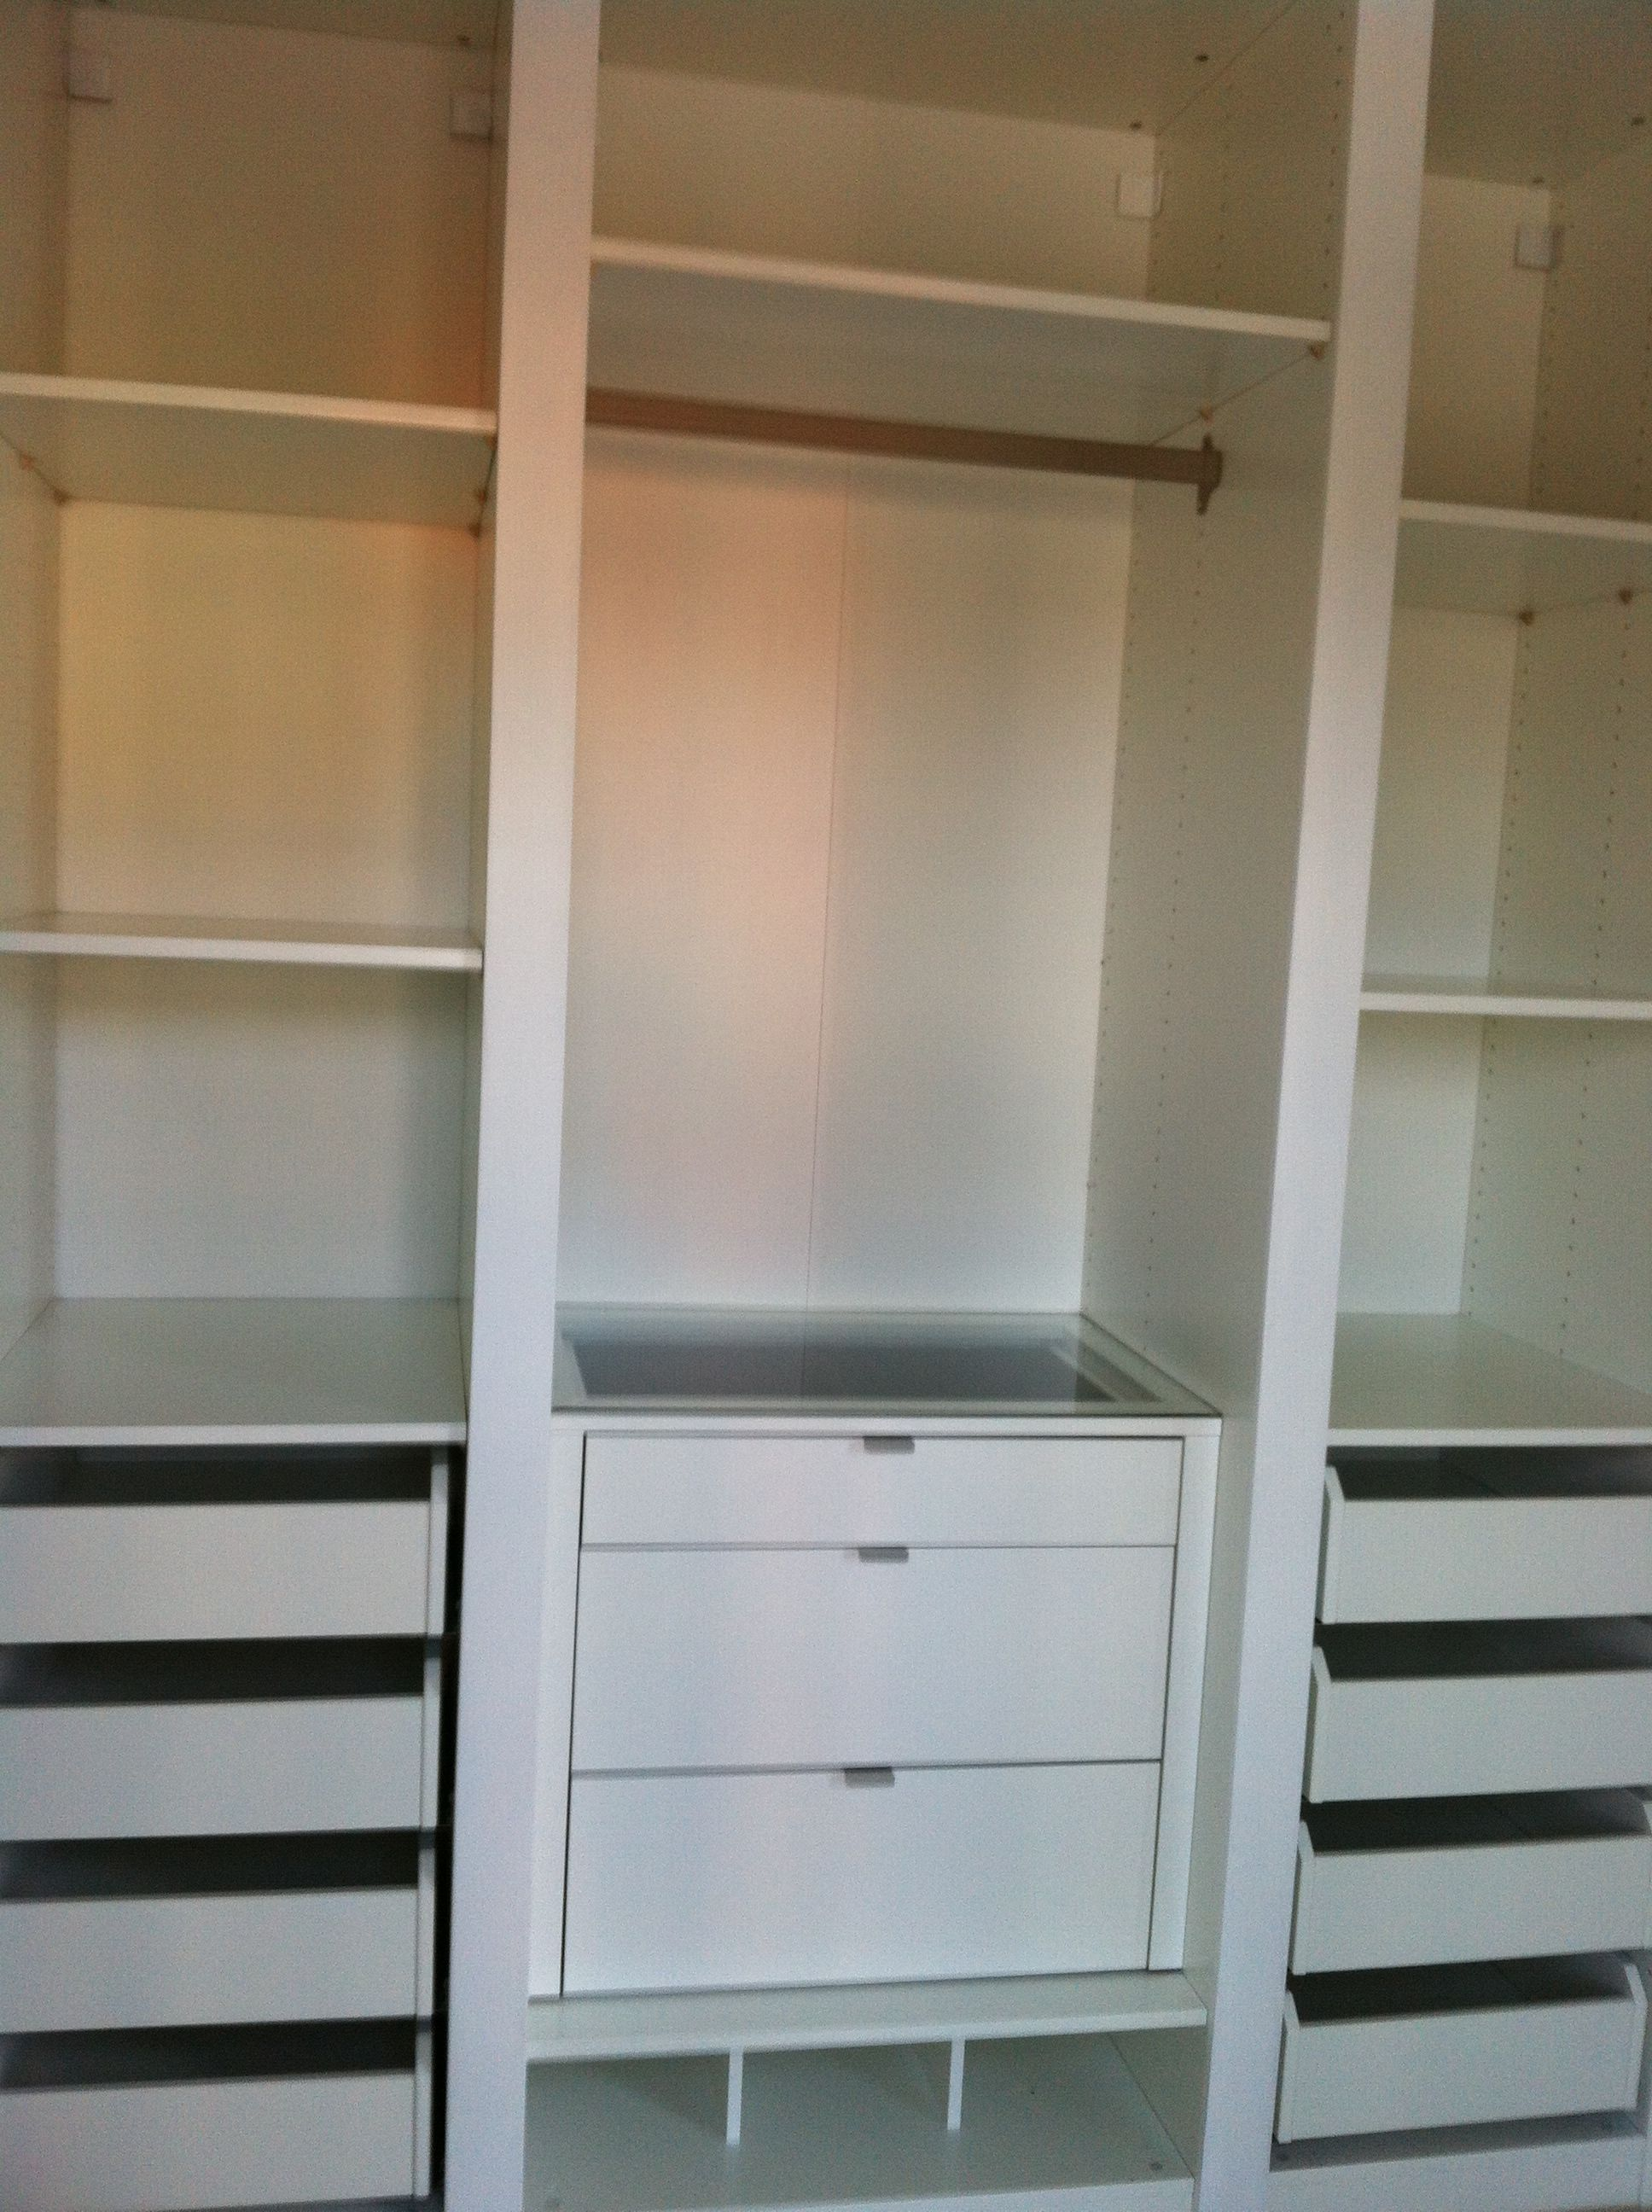 ikea built in closet hack. ikea built in closet hack   Ikea Custom Closet ideas hacks